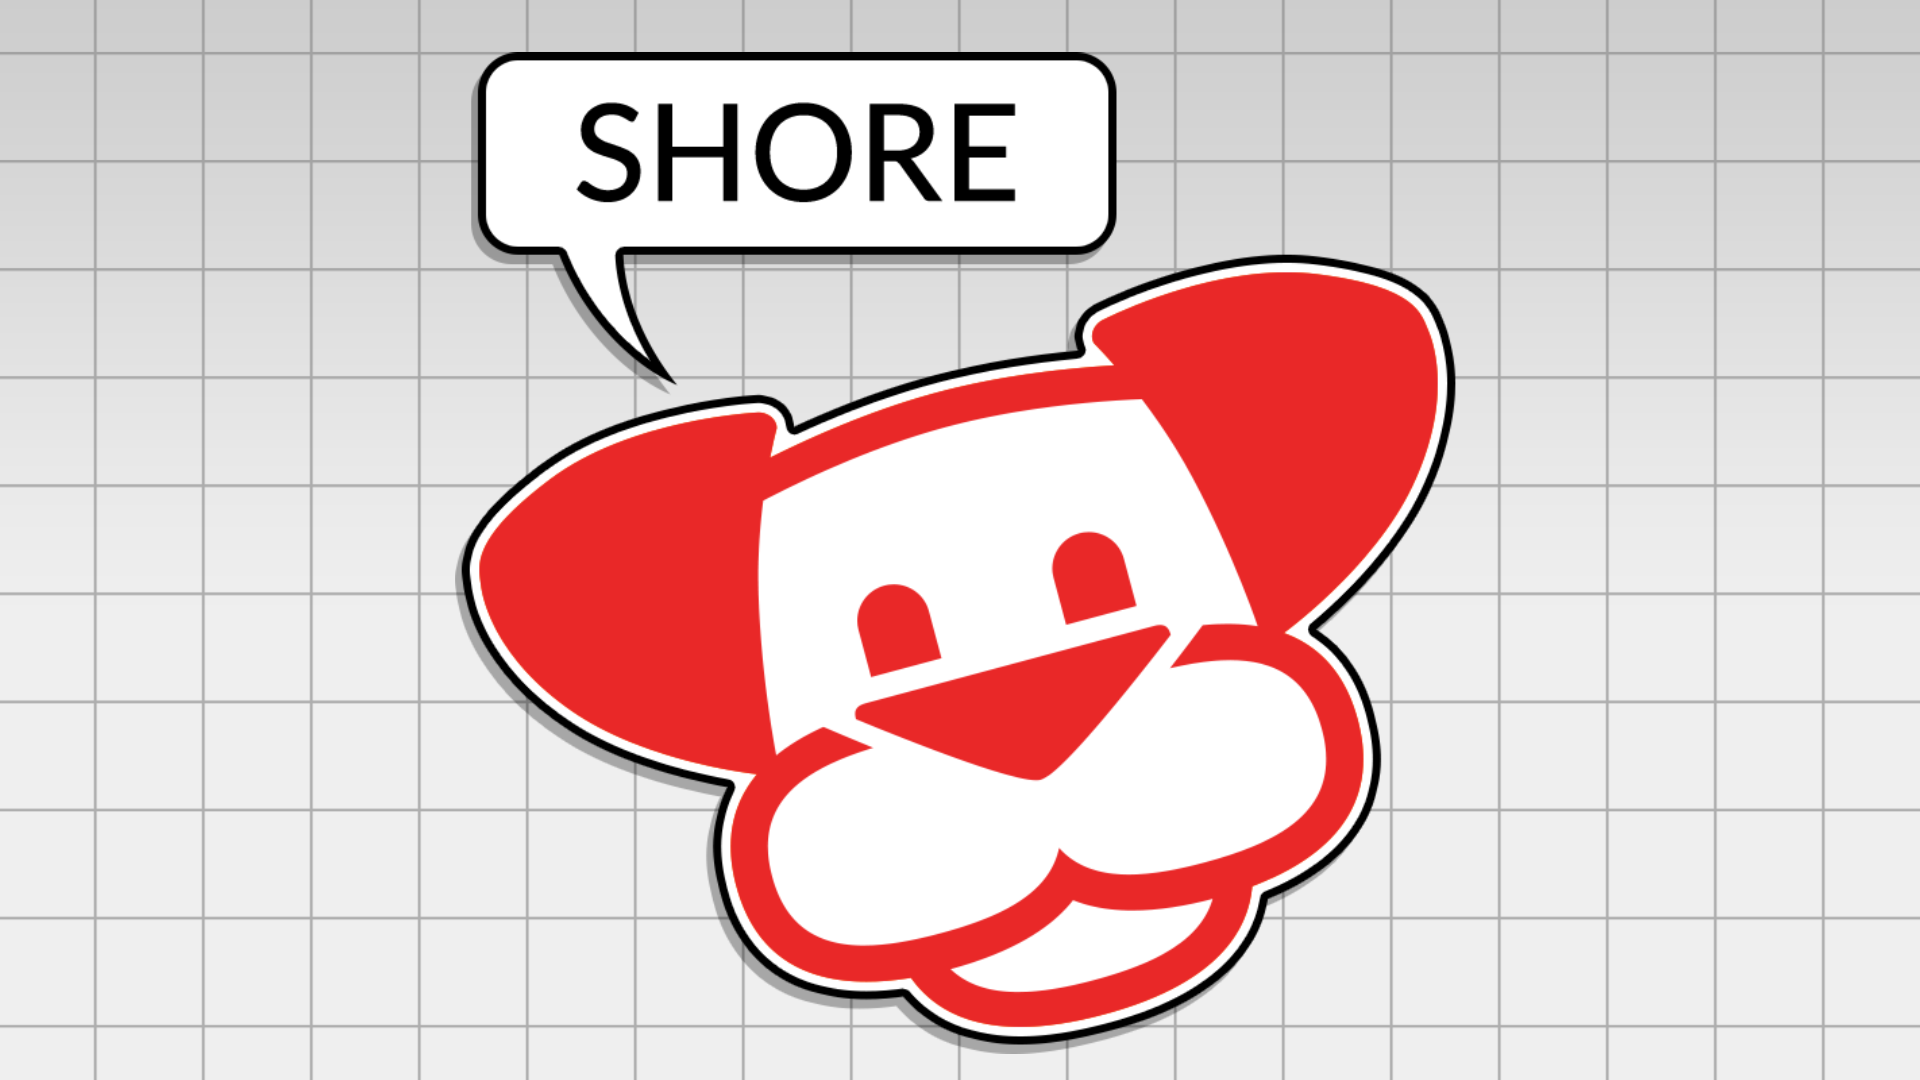 Icon for SHORE Feels Good